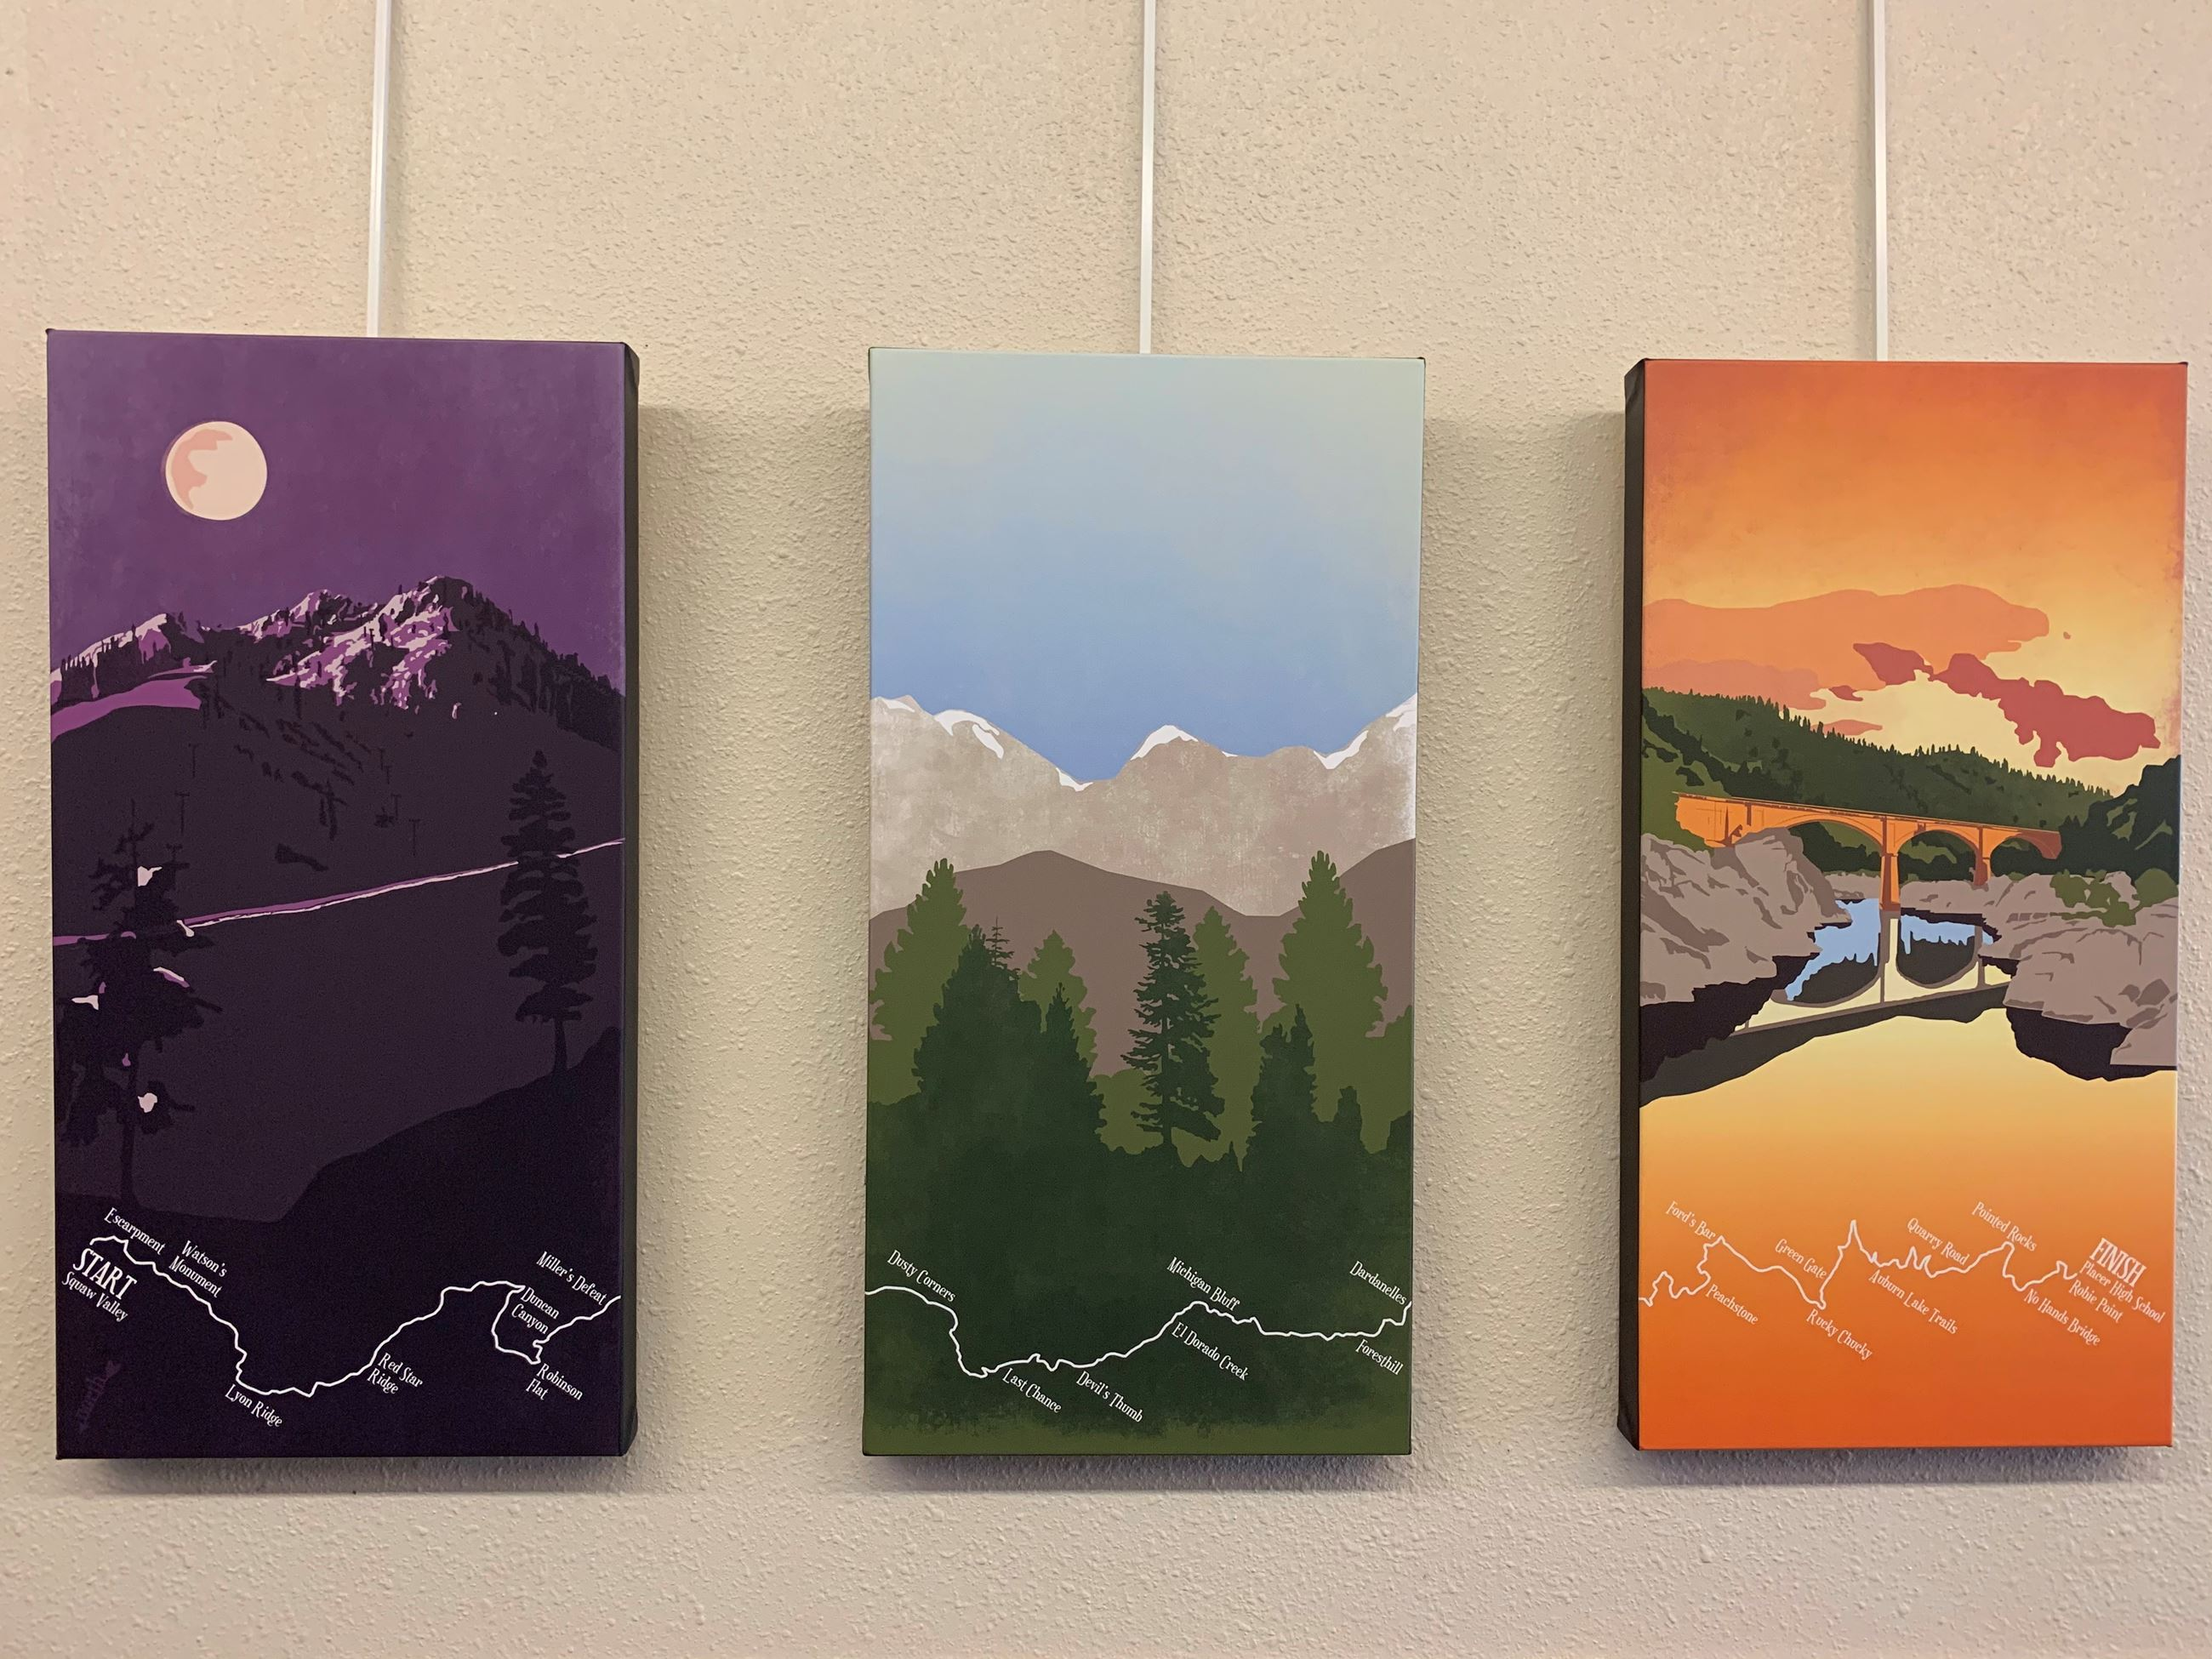 series of three painting hanging on a wall. paintings of mountains.